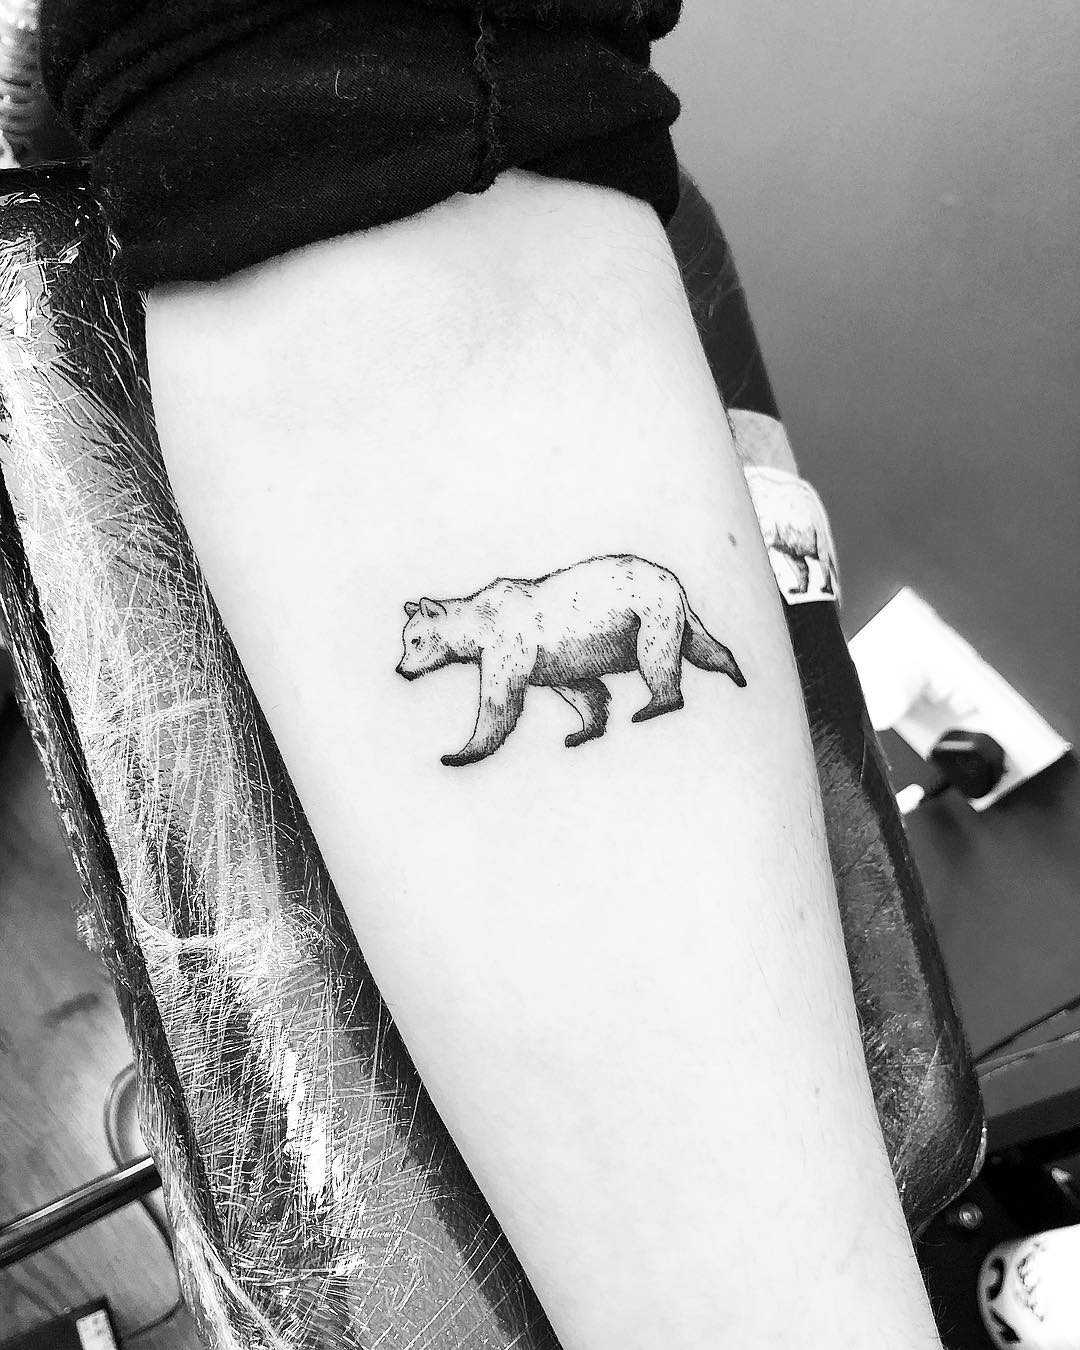 Little brown bear by Jake Harry Ditchfield